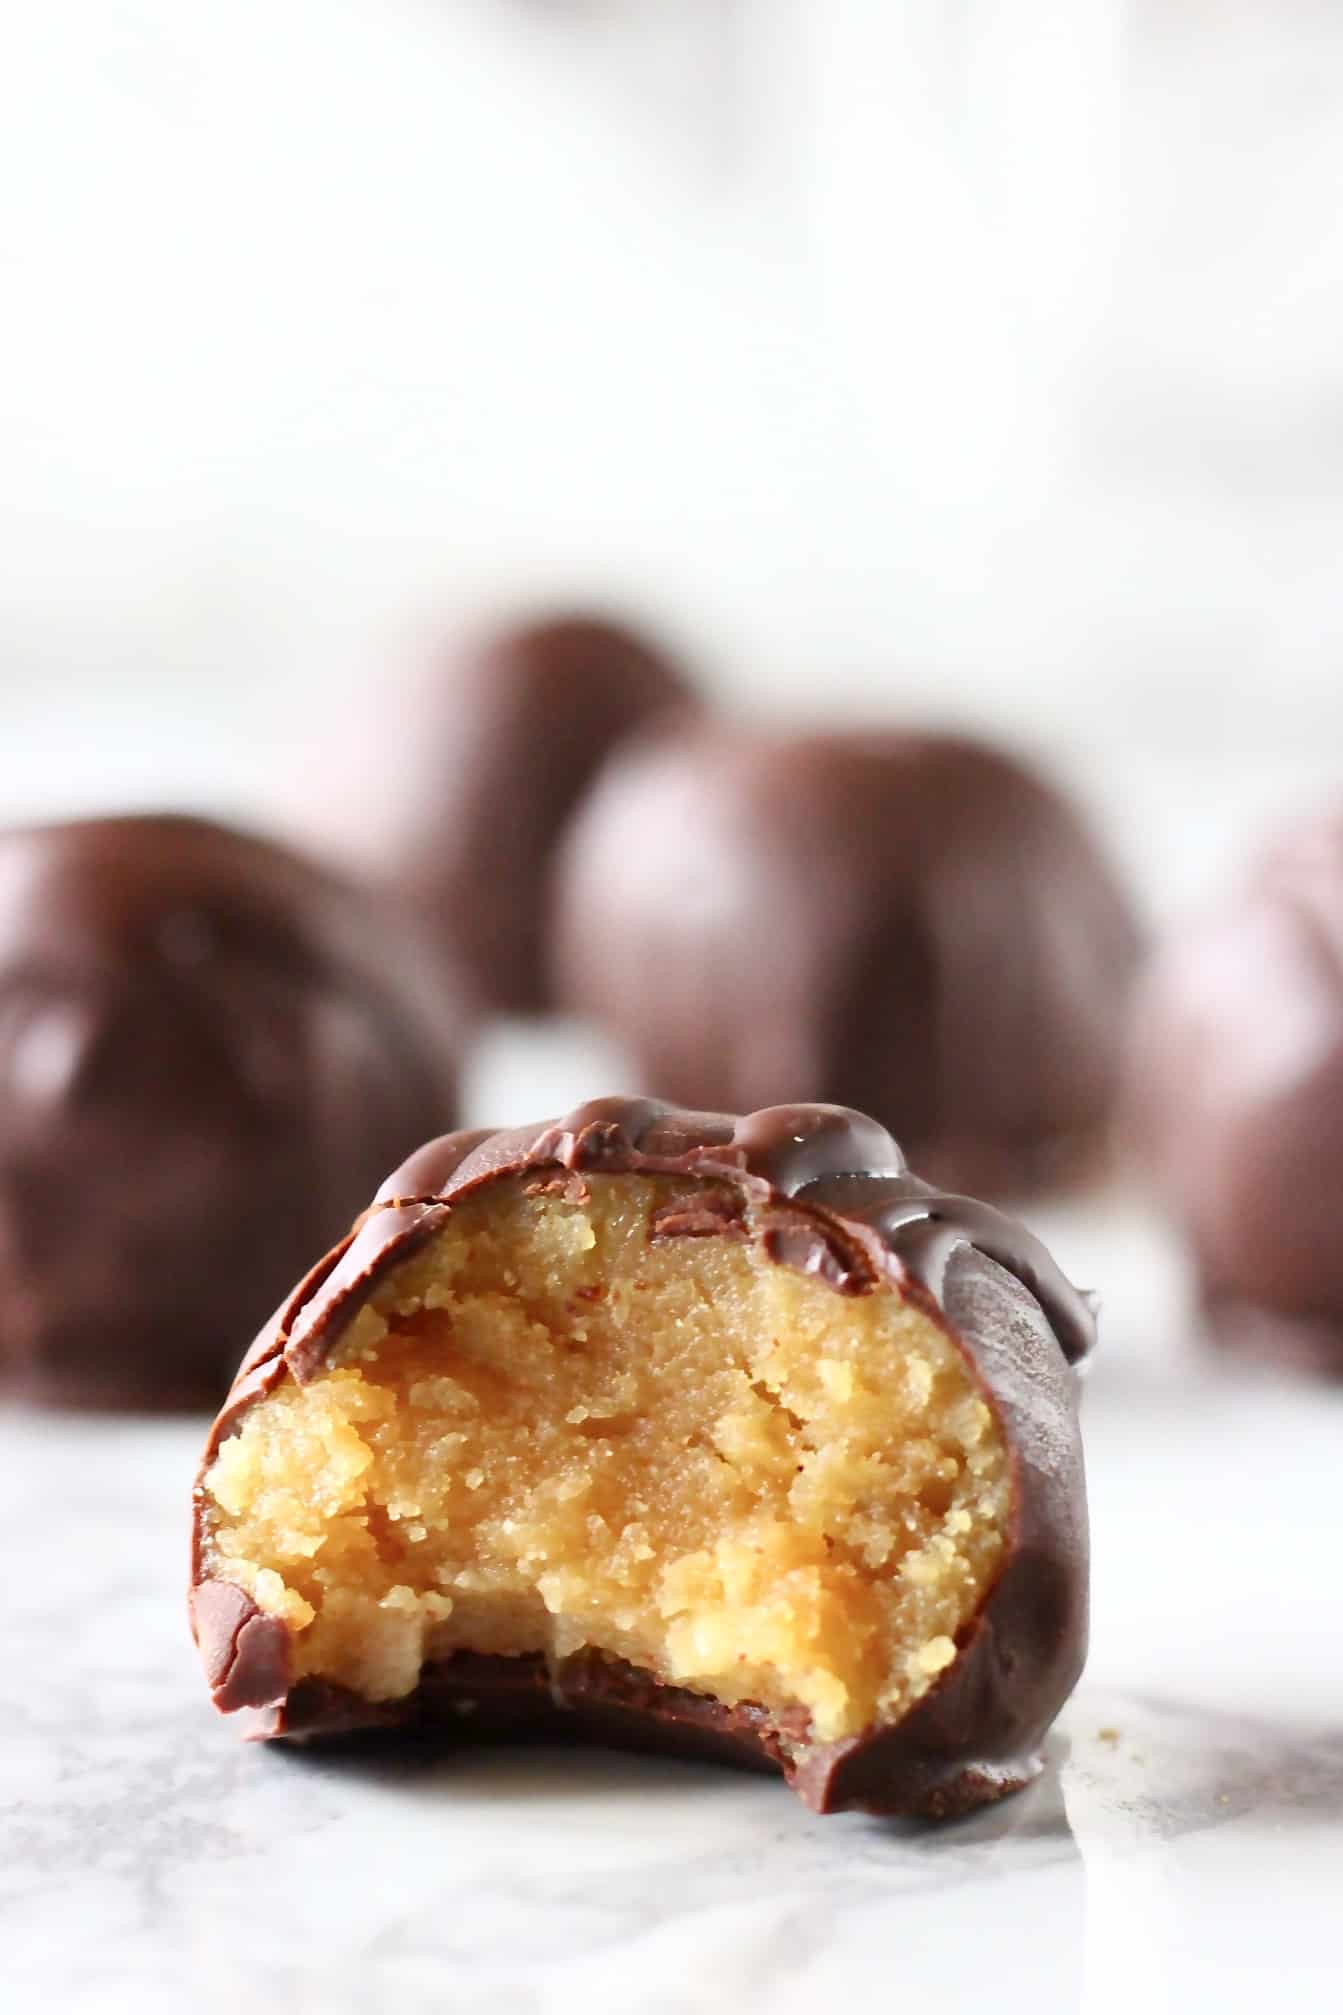 Chocolate-covered peanut butter balls with a bite taken out of one